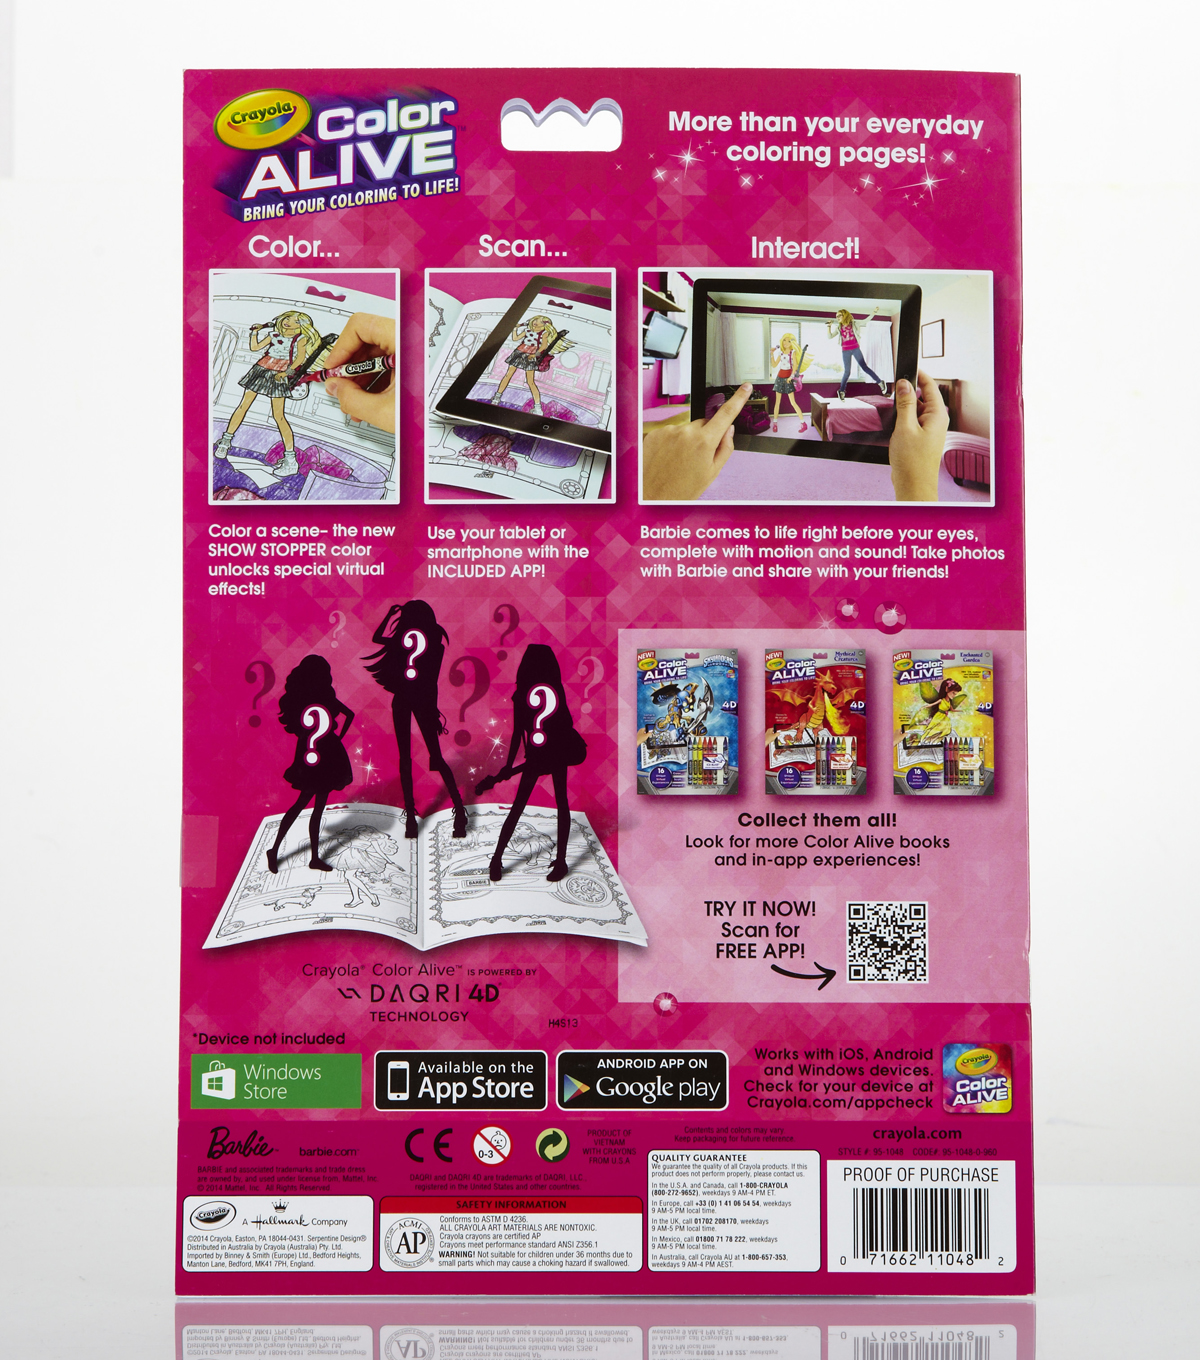 crayola color alive action coloring pages barbie joann